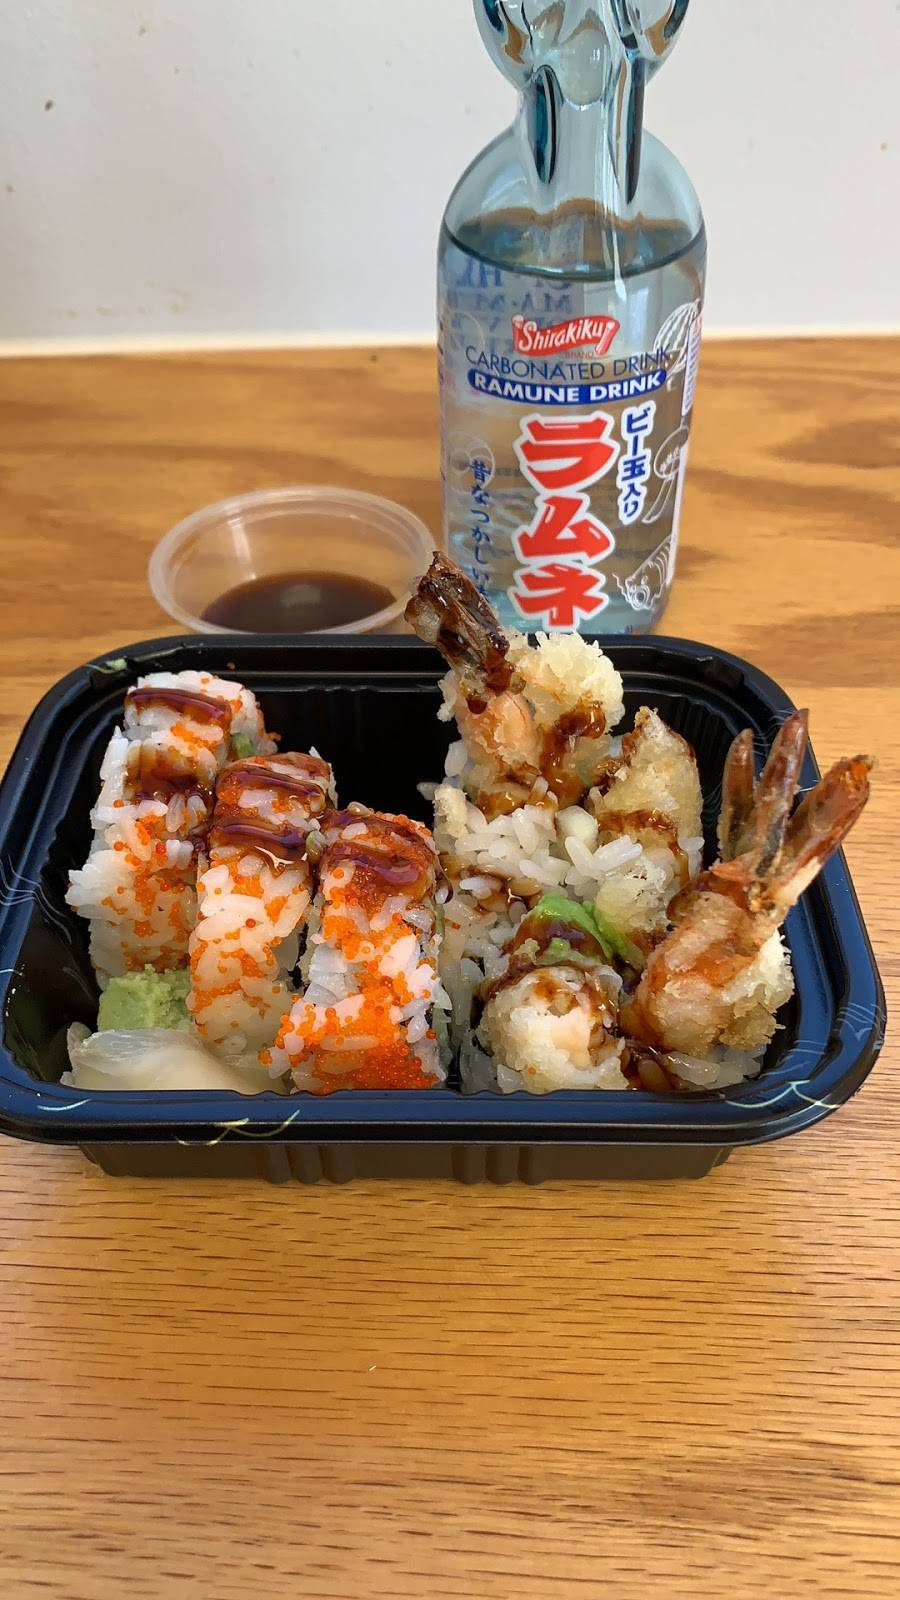 Joe Asian & Sushi | restaurant | 33-19 36th Ave, Queens, NY 11106, USA | 7183616822 OR +1 718-361-6822